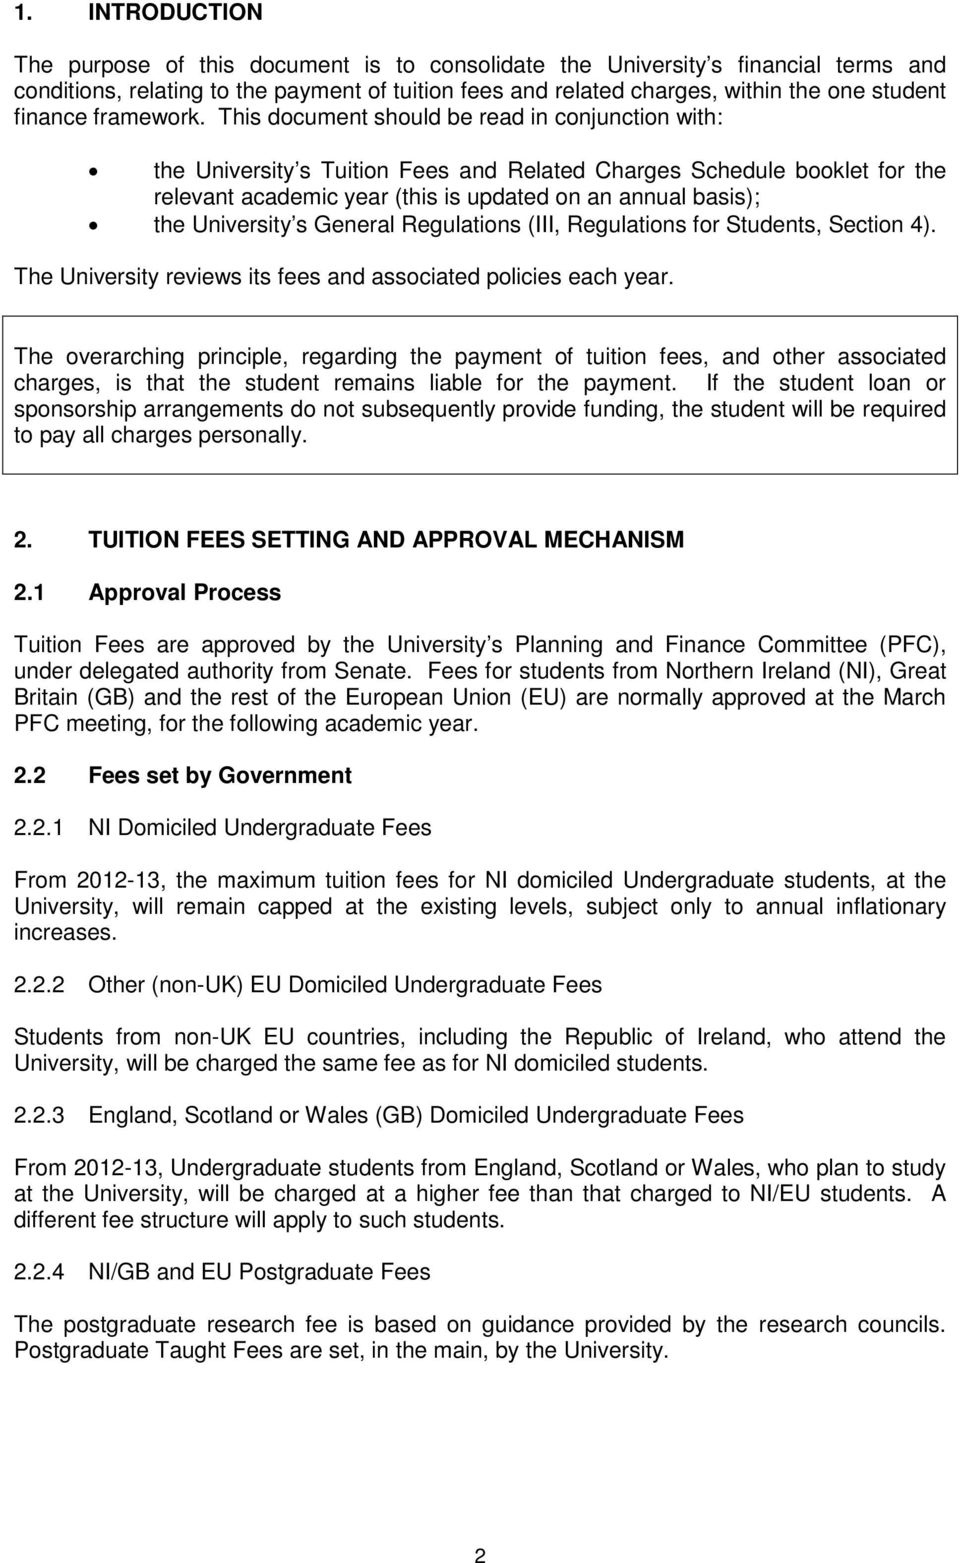 This document should be read in conjunction with: the University s Tuition Fees and Related Charges Schedule booklet for the relevant academic year (this is updated on an annual basis); the